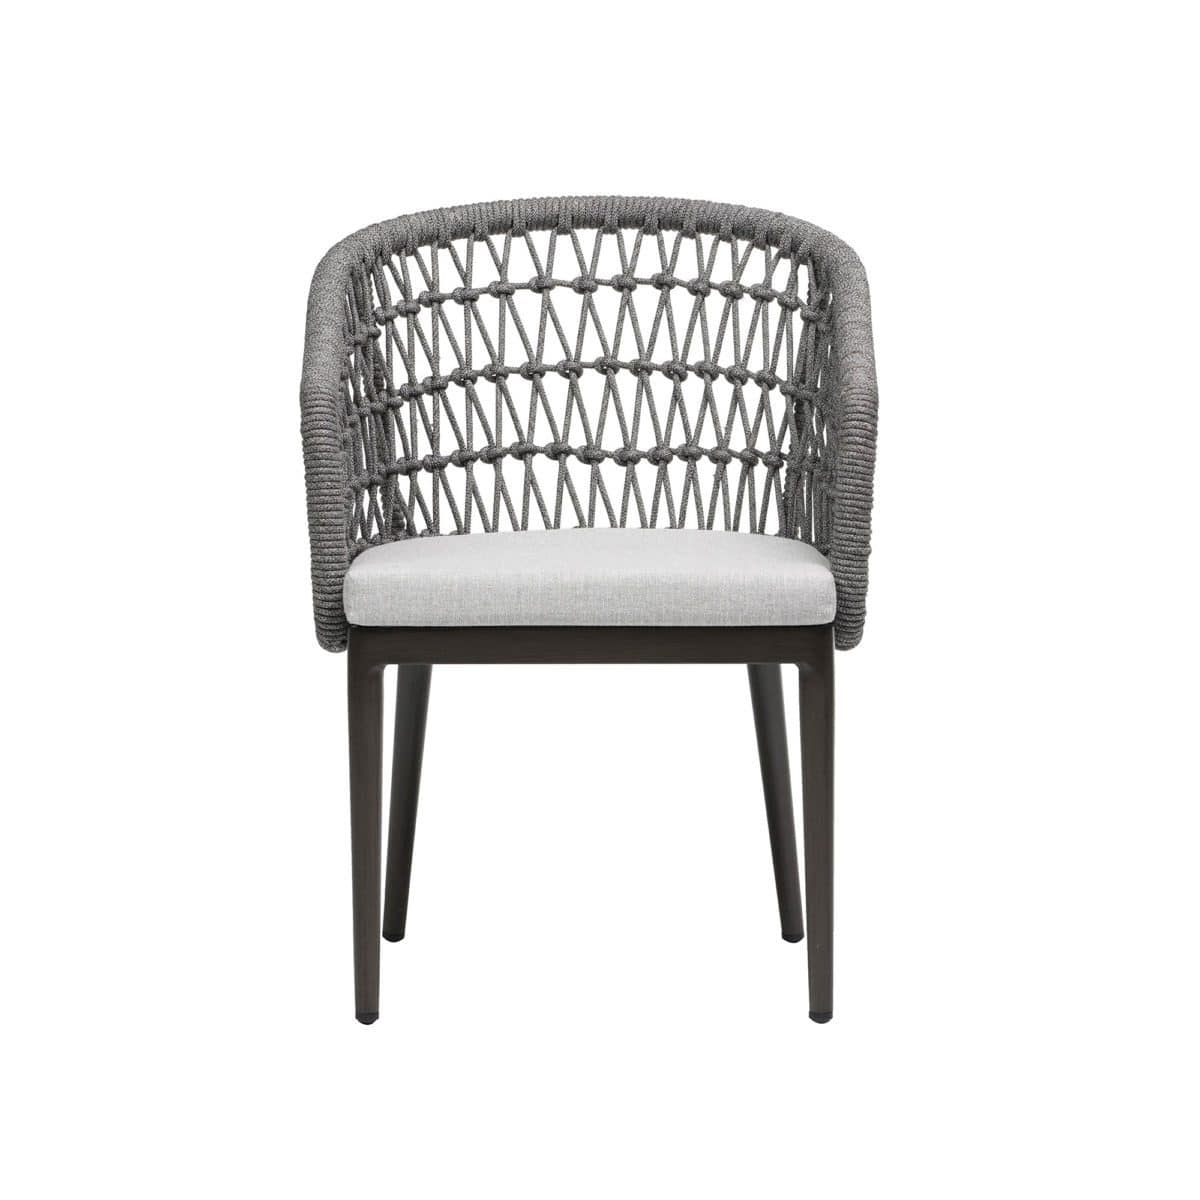 Ratana Arm Chair Poinciana Dining Arm Chair